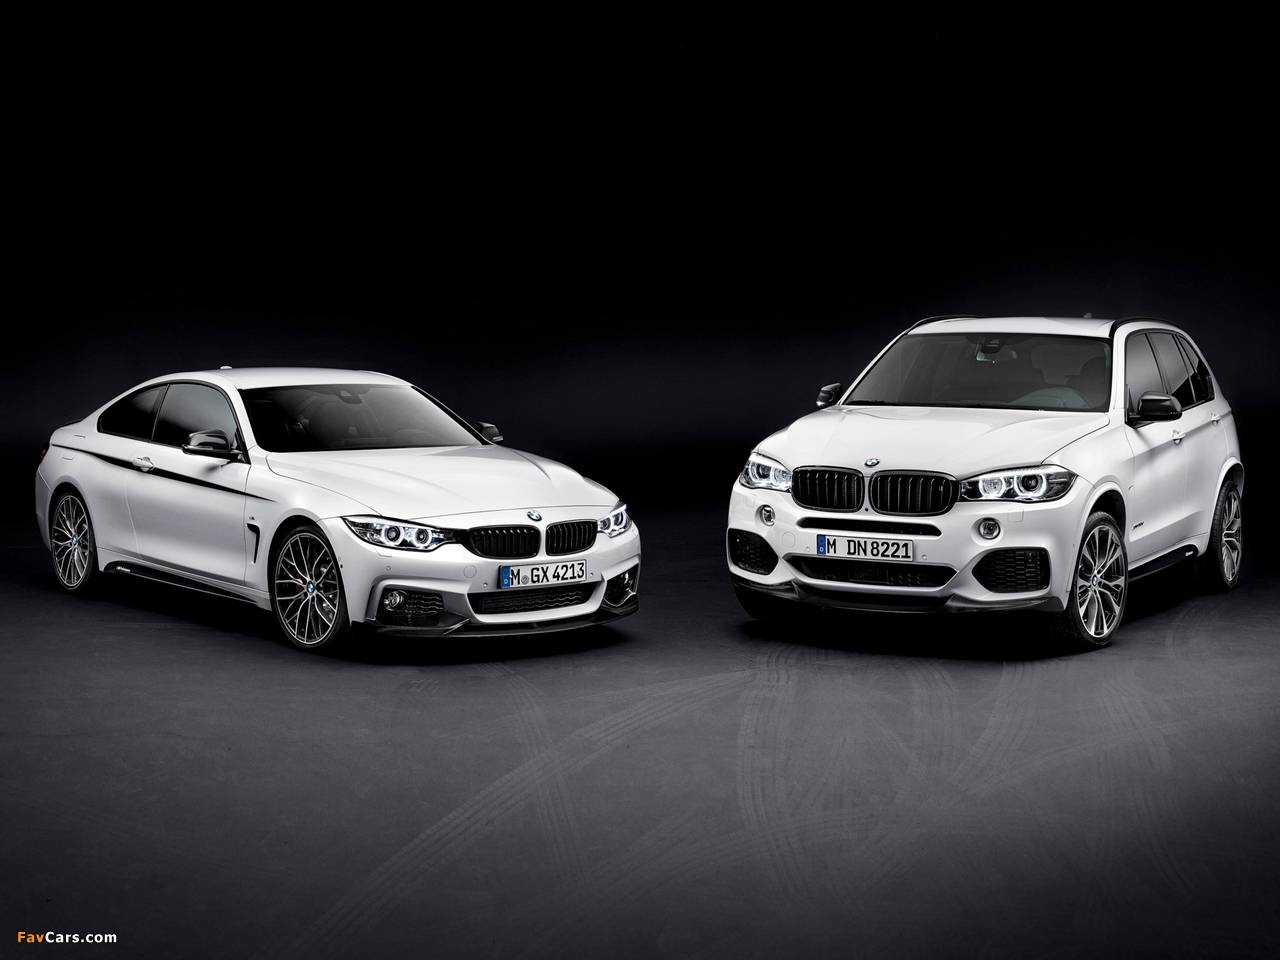 Images of BMW (1280 x 960)